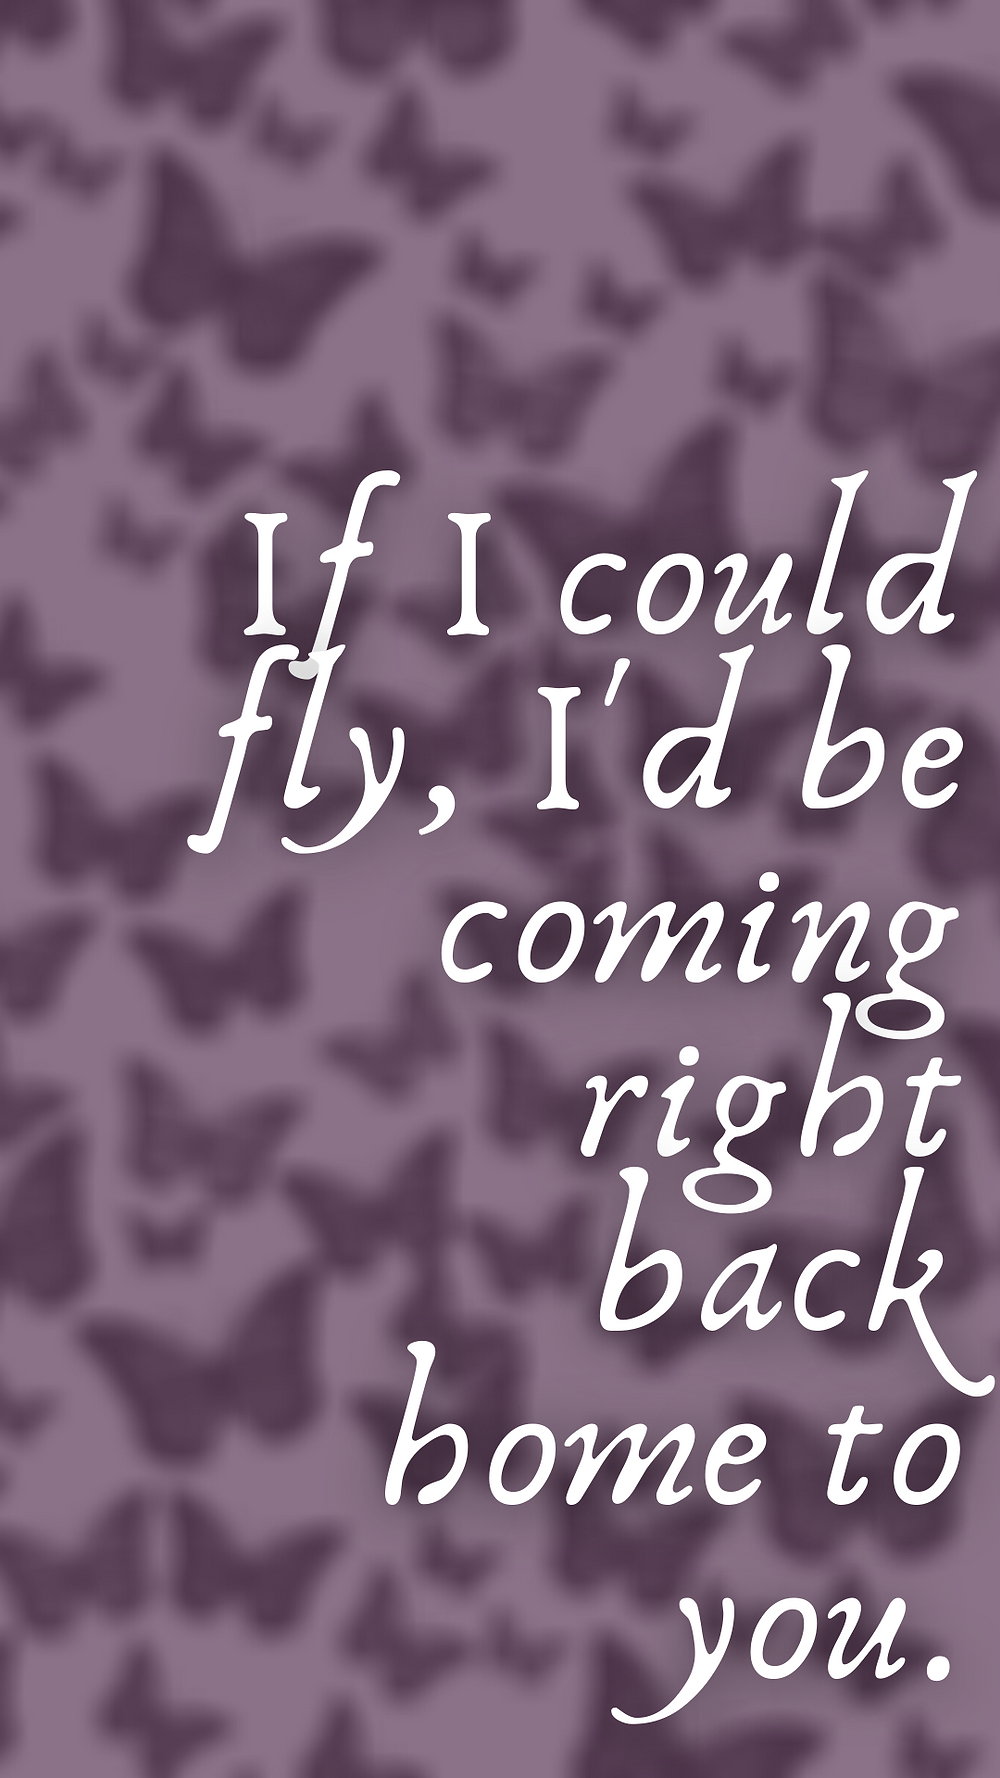 one direction wallpaper if I could fly